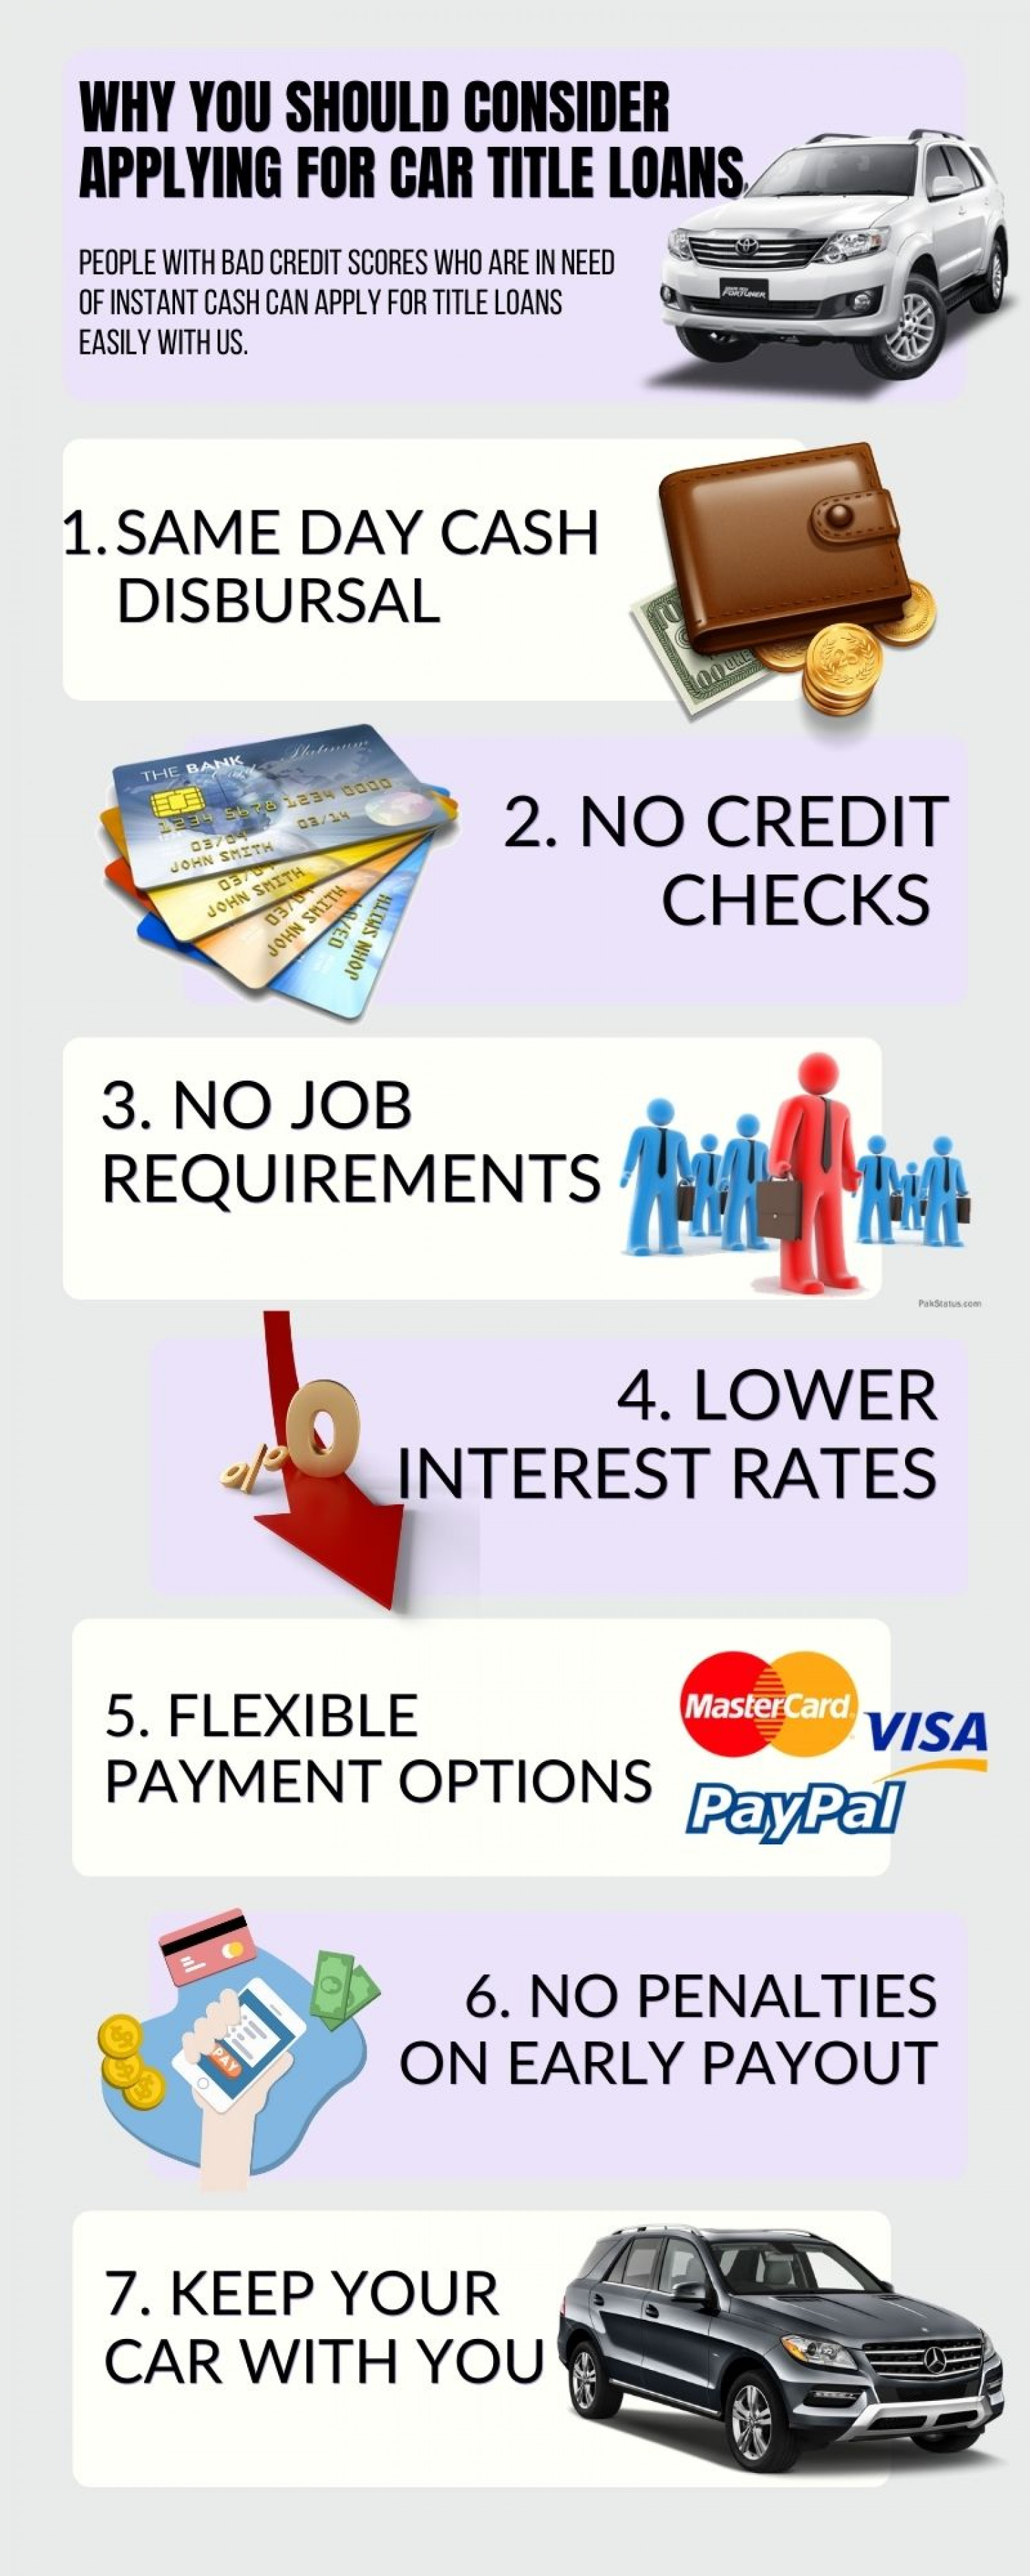 Why you should consider applying for Car Title Loans Infographic